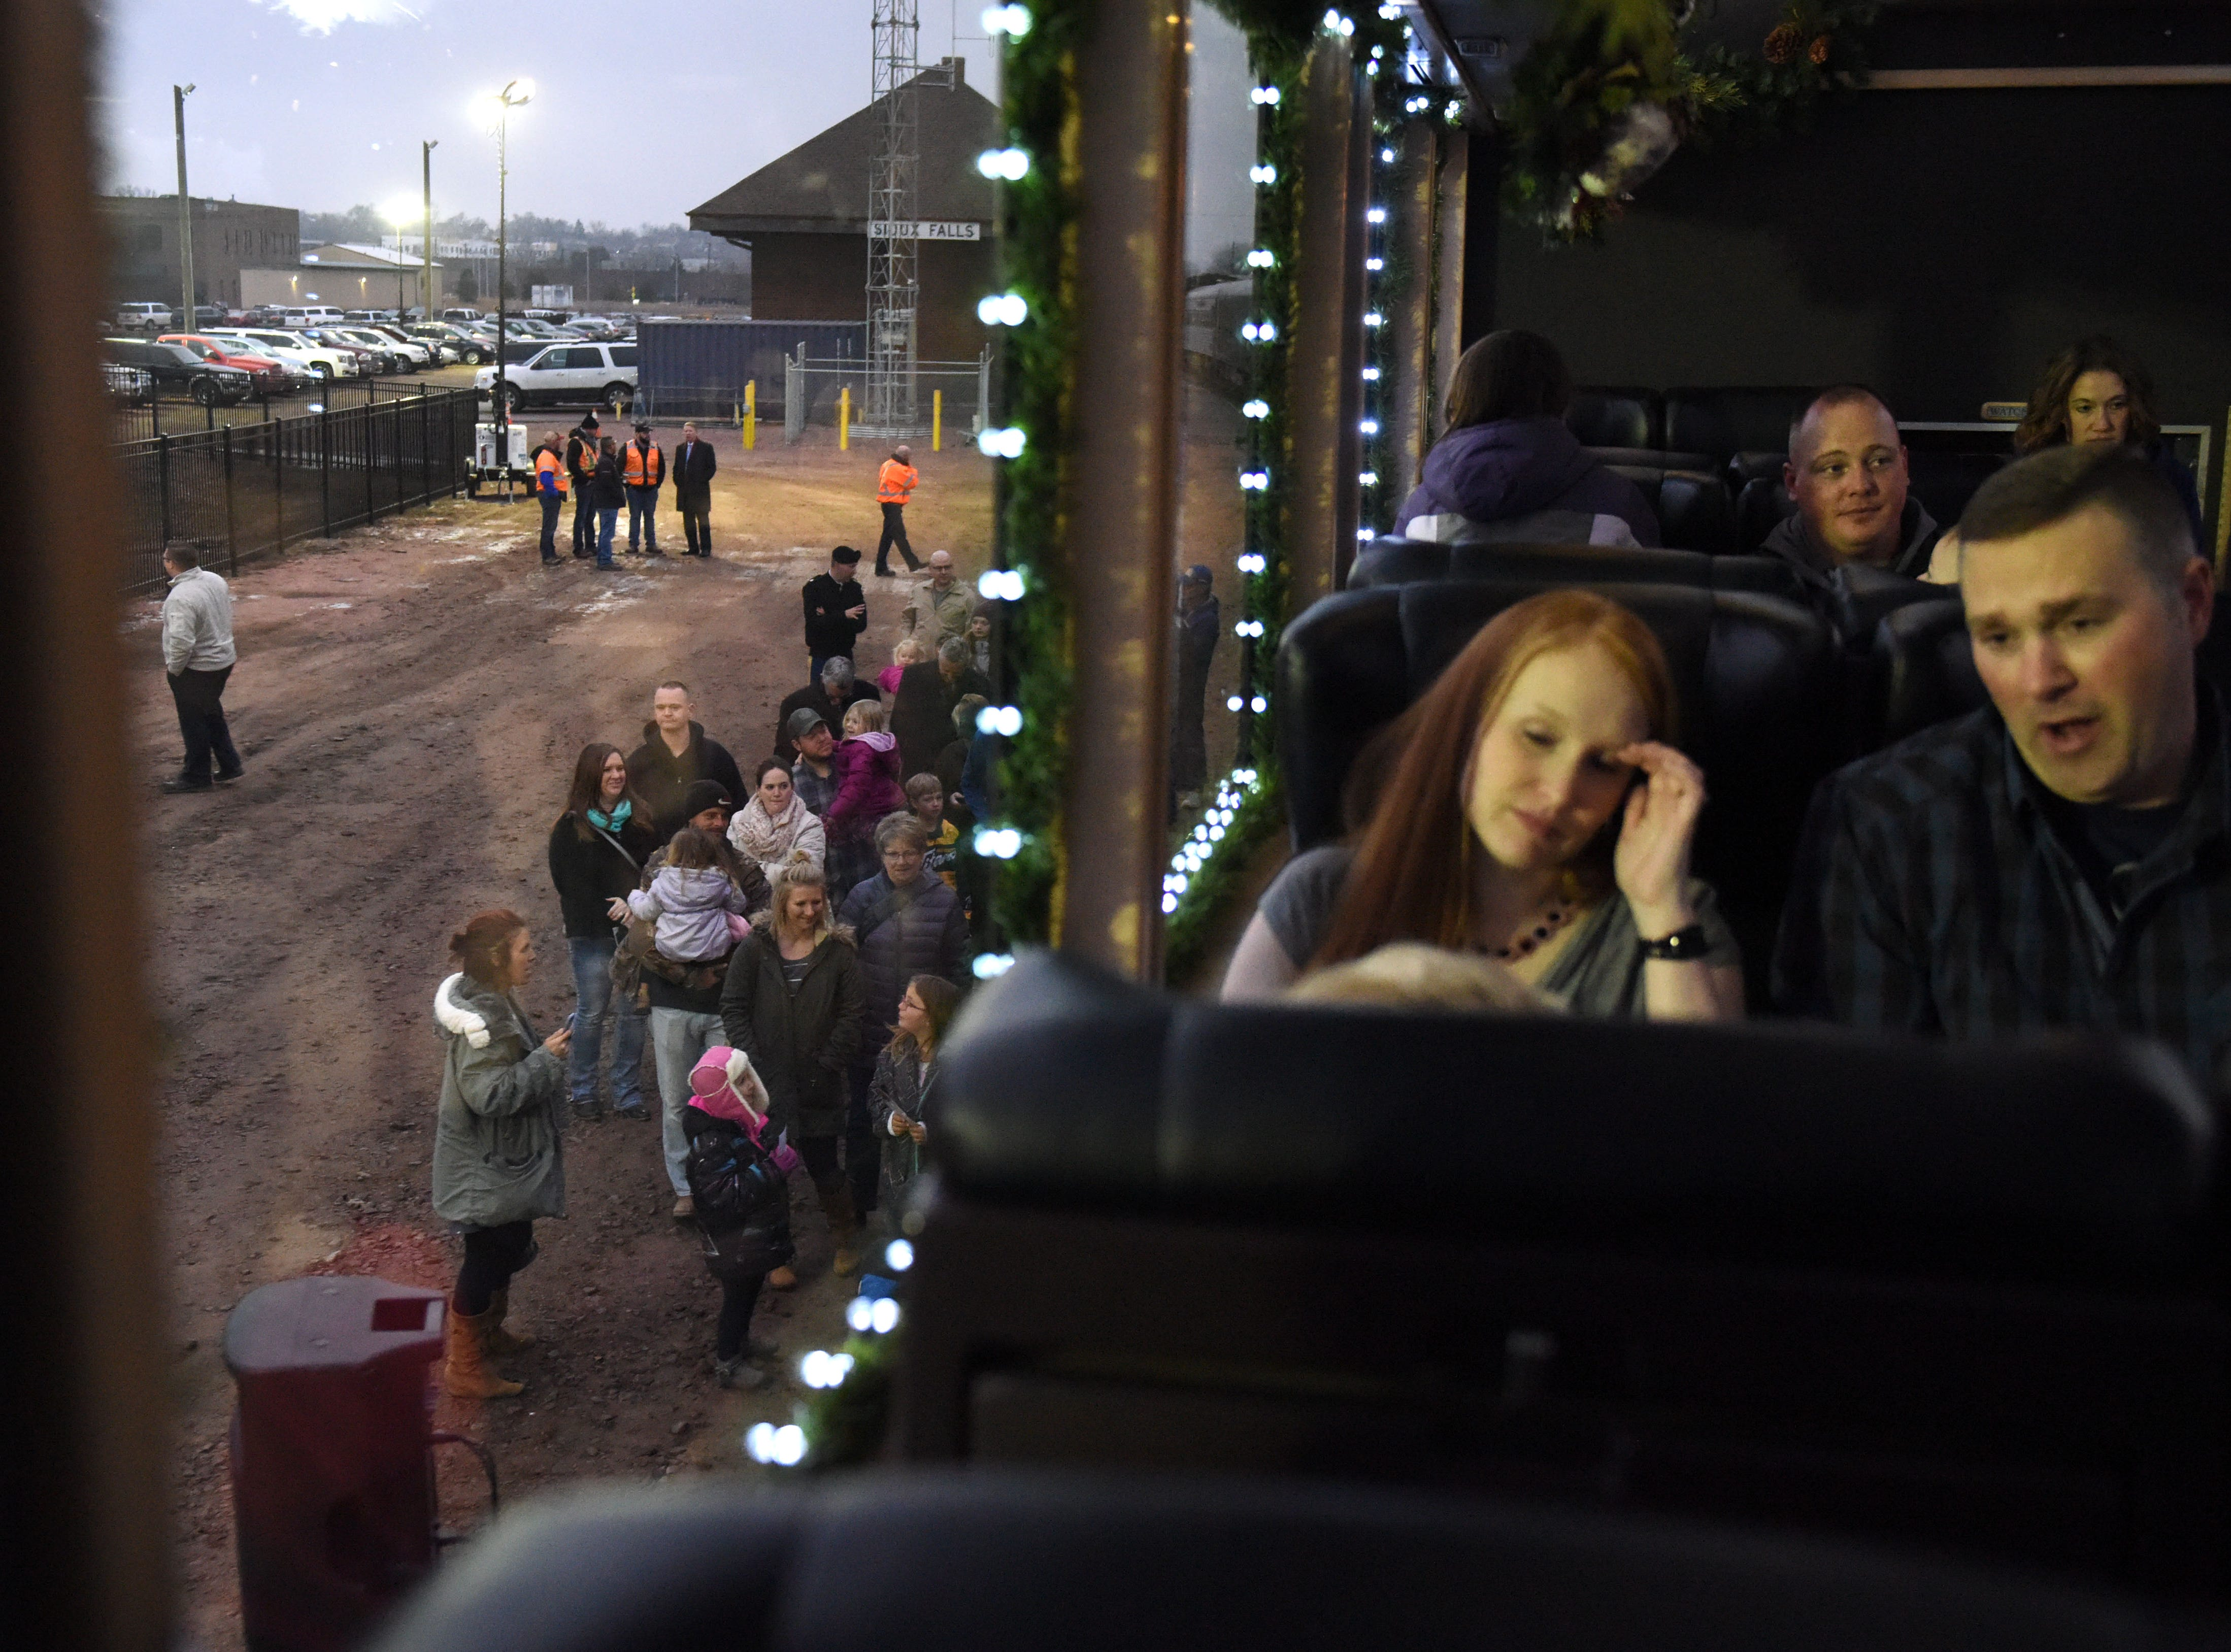 People wait in their seats as others board the BNSF train in Sioux Falls, S.D., Thursday, Nov. 29, 2018.